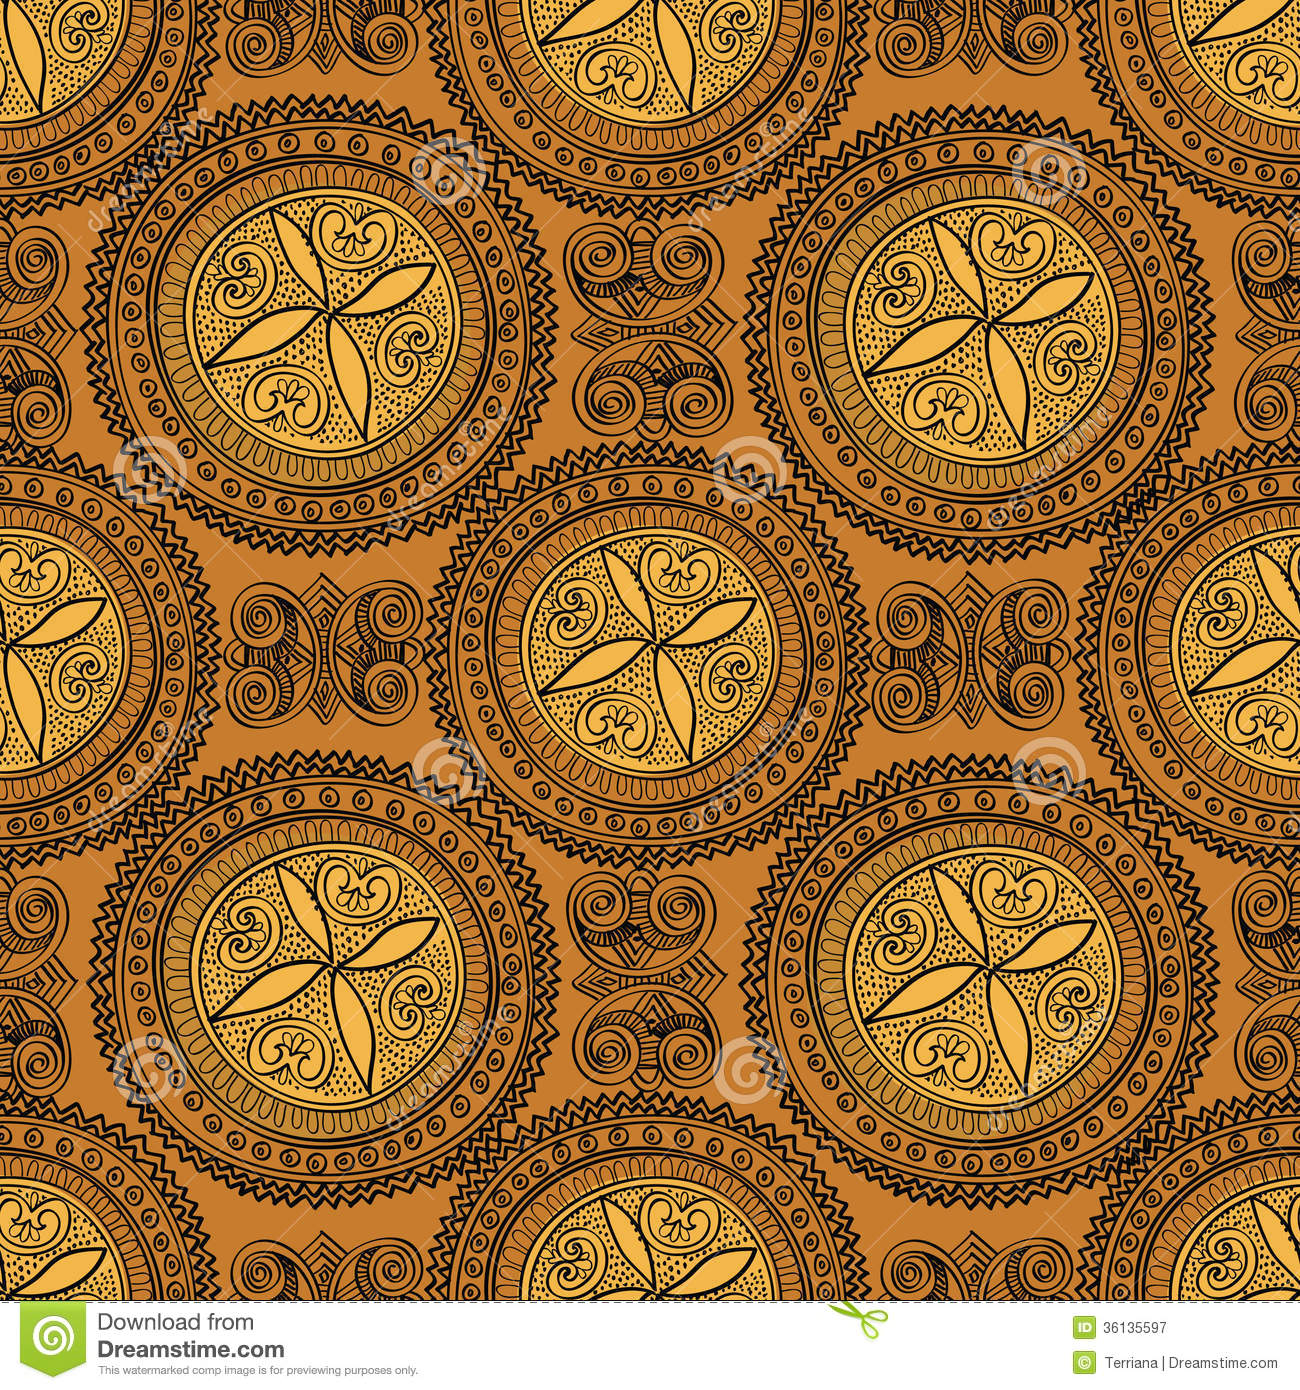 Abstract Ethnic Seamless Background. Floral Line Texture